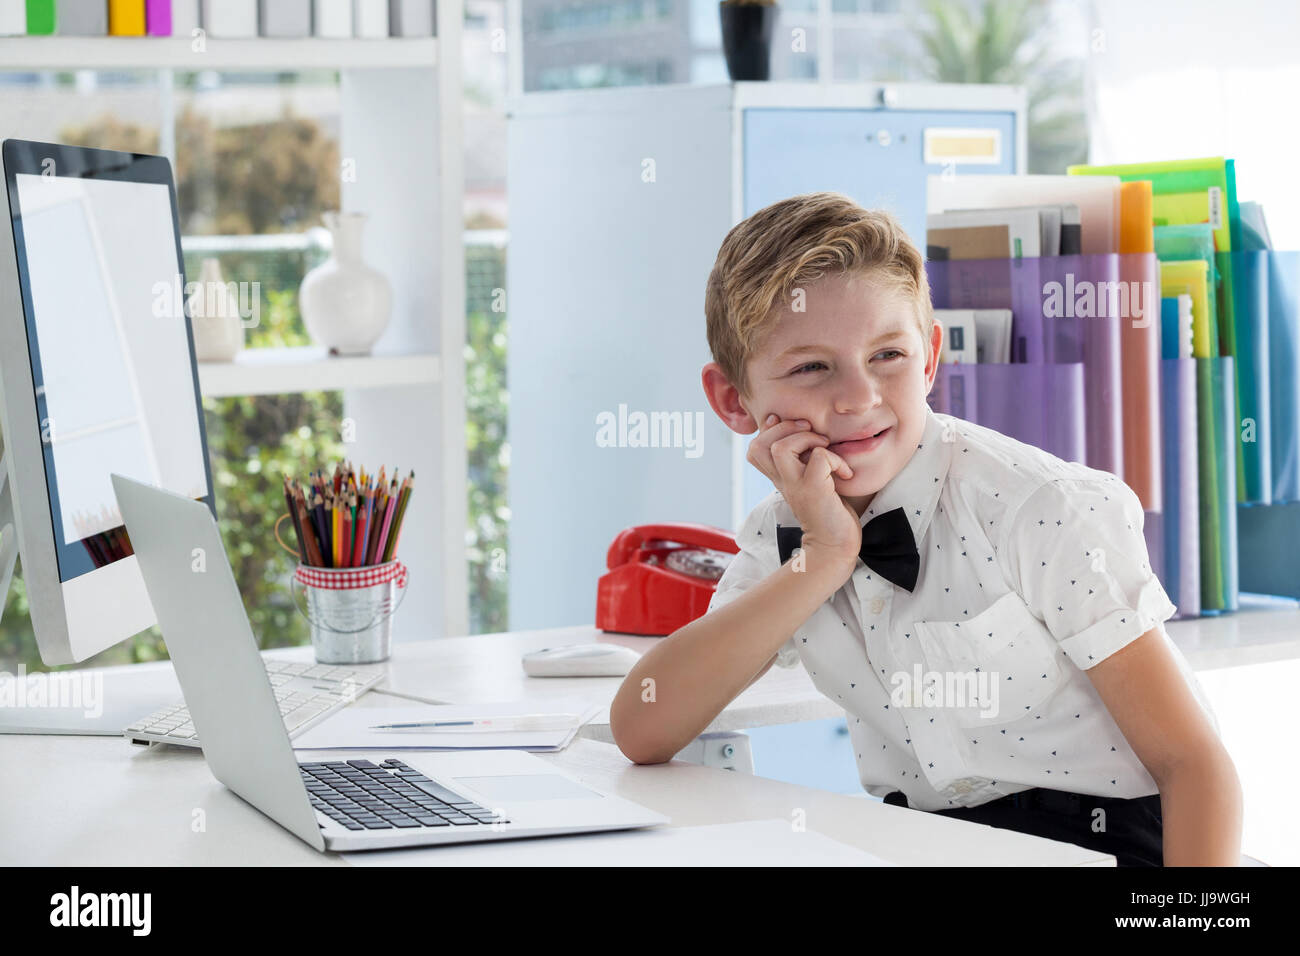 Thoughtful businessman with hand on chin looking away while sitting by laptop at desk in office - Stock Image